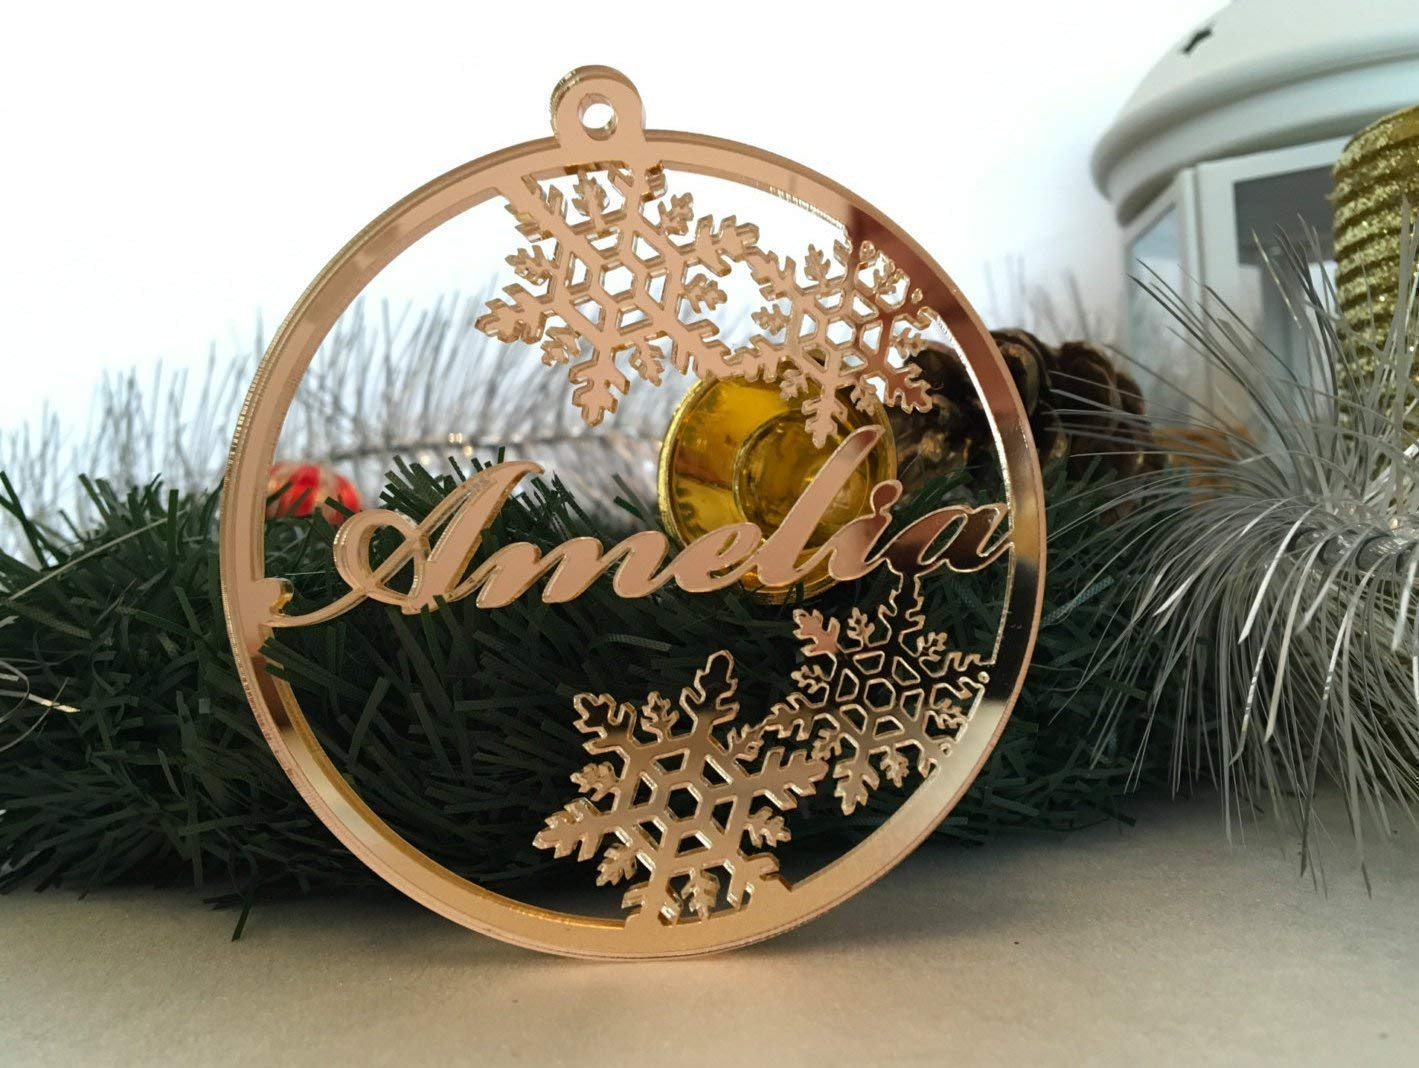 White House Laser Cut Christmas Ornaments 2021 Amazon Com Personalized 2021 Christmas Ornament Laser Cut Bauble Custom Name Baubles Babys First Christmas Xmas Gifts For Family Gold Silver Acrylic Wooden Tree Decorations Snowflake Hanging Tags Home Decor 2022 Handmade